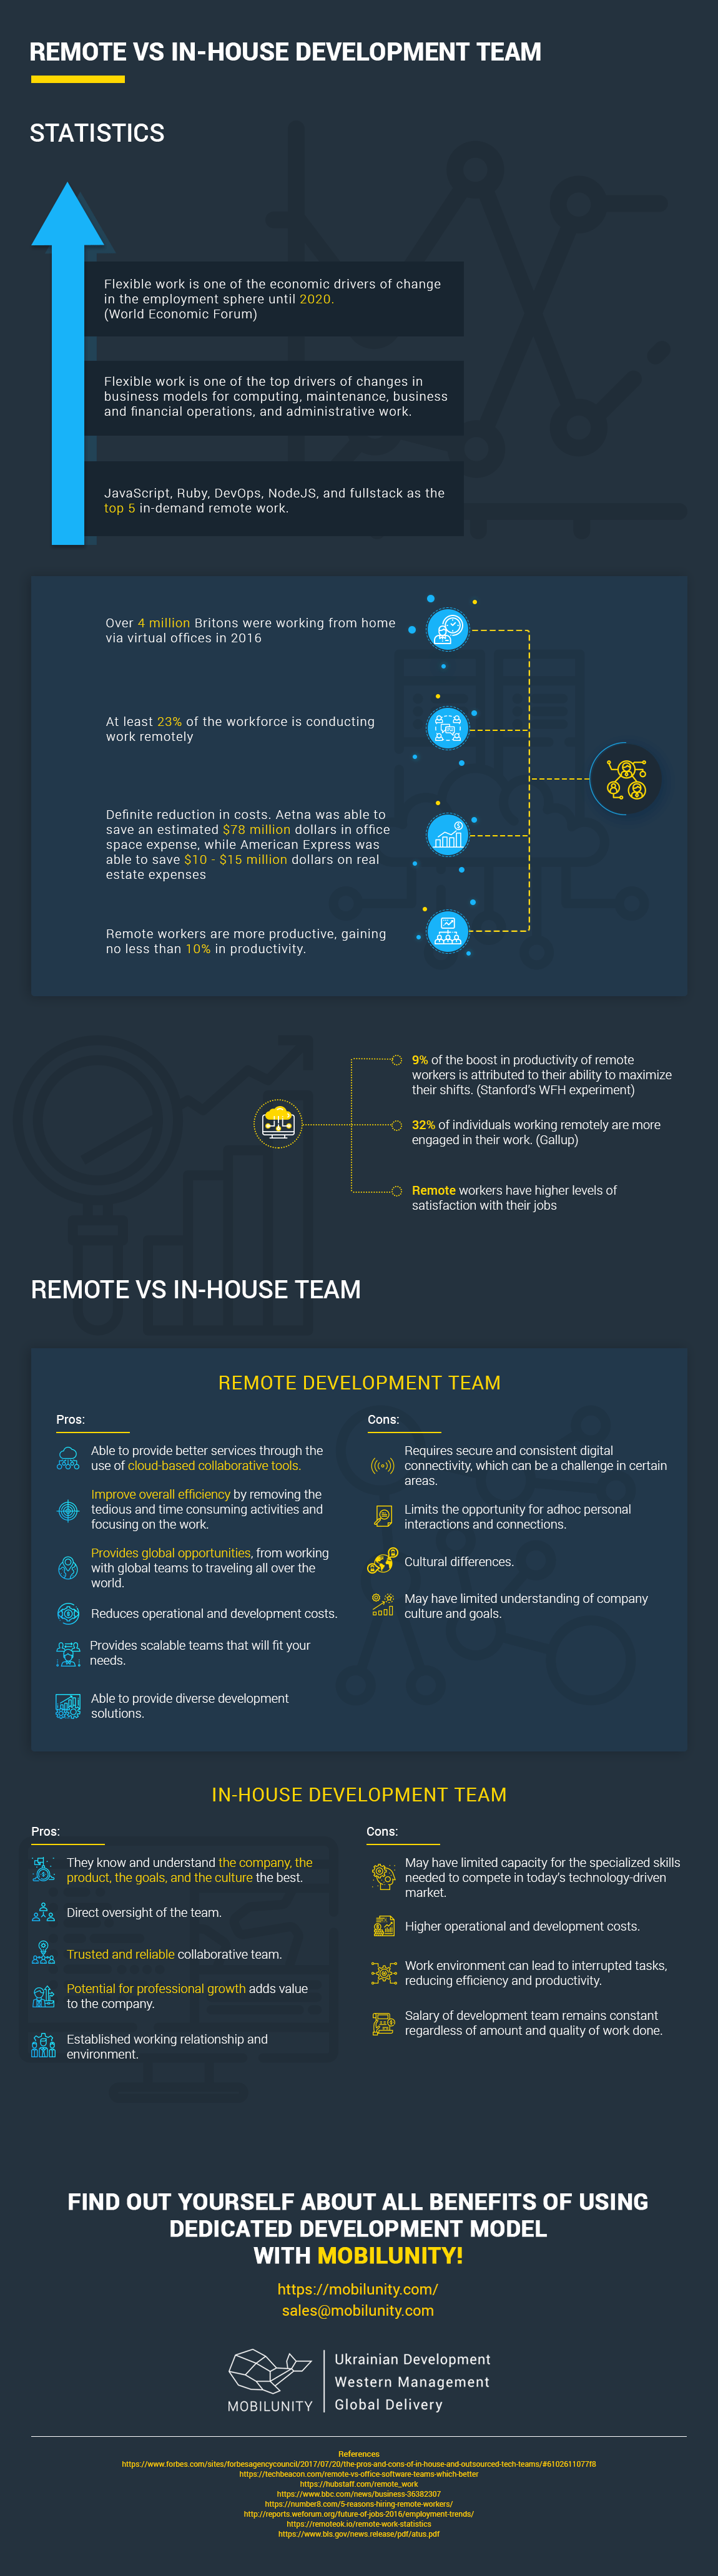 Remote vs Inhouse Development Team Infographic